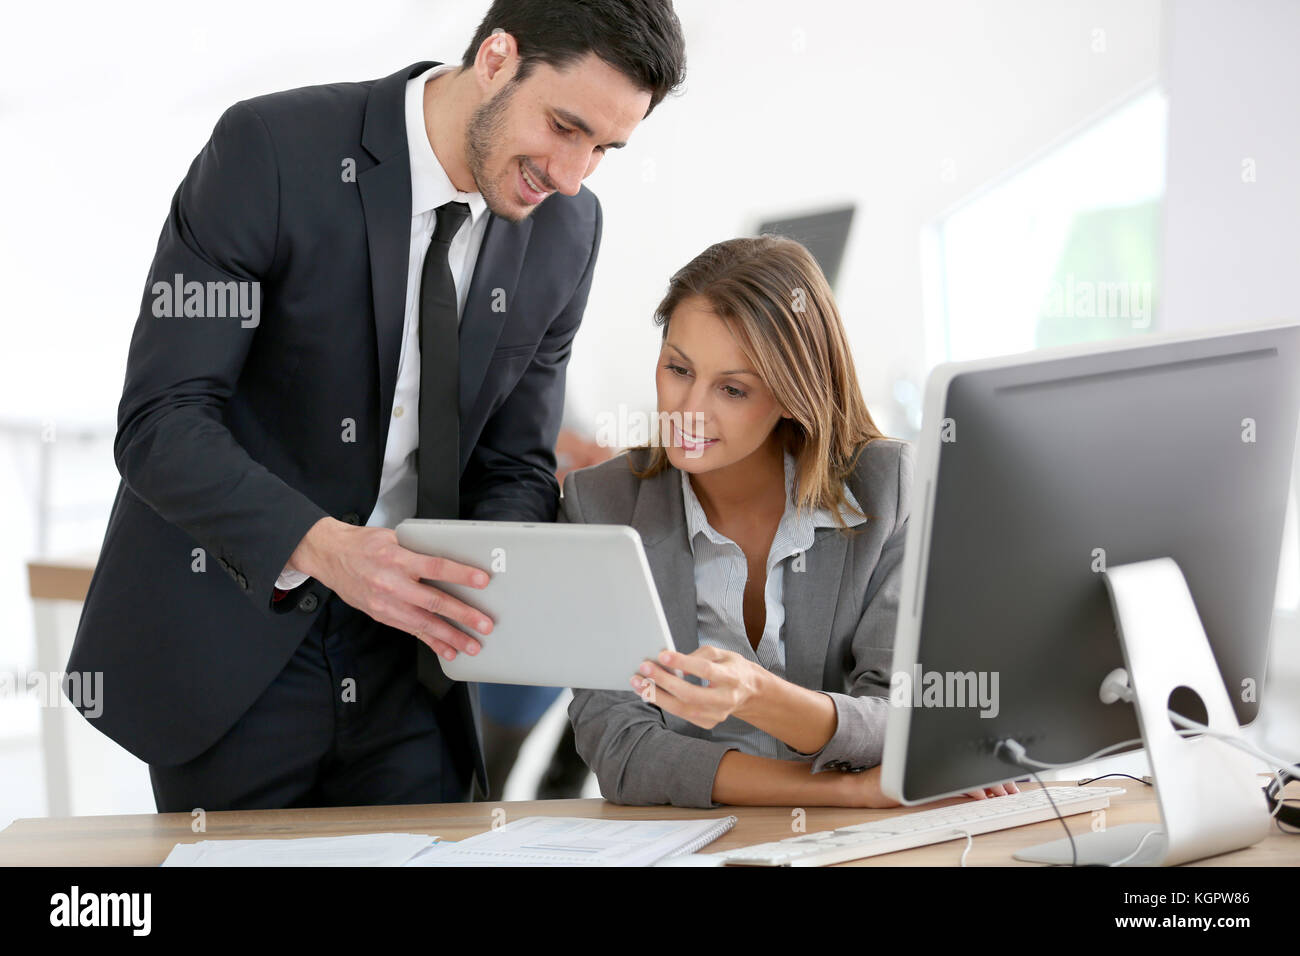 Business people in office working on tablet - Stock Image